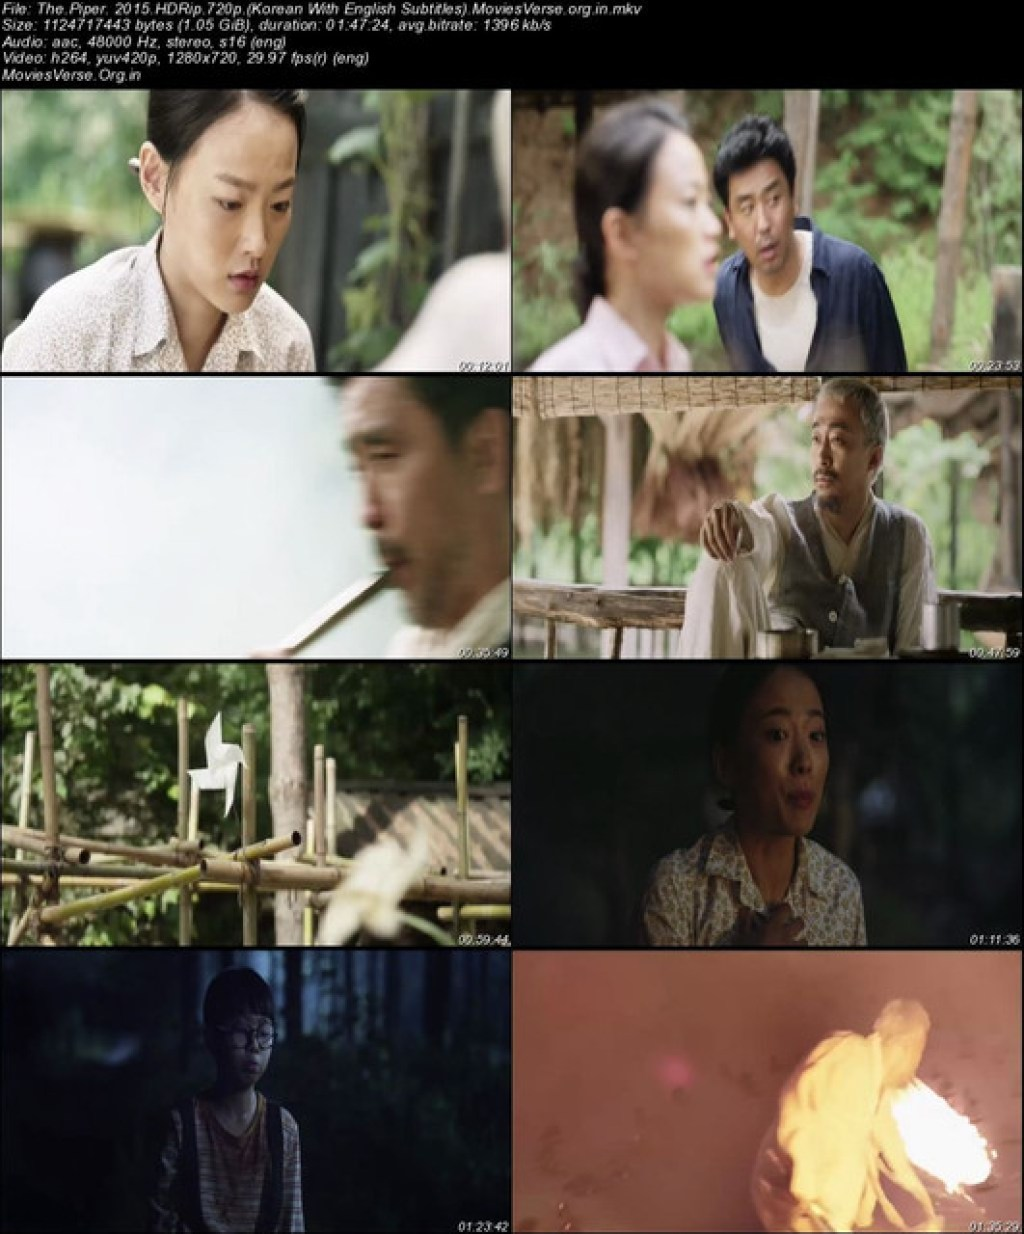 The-Piper-2015-HDRip-720p-Korean-With-English-Subtitles-Movies-Verse-org-in